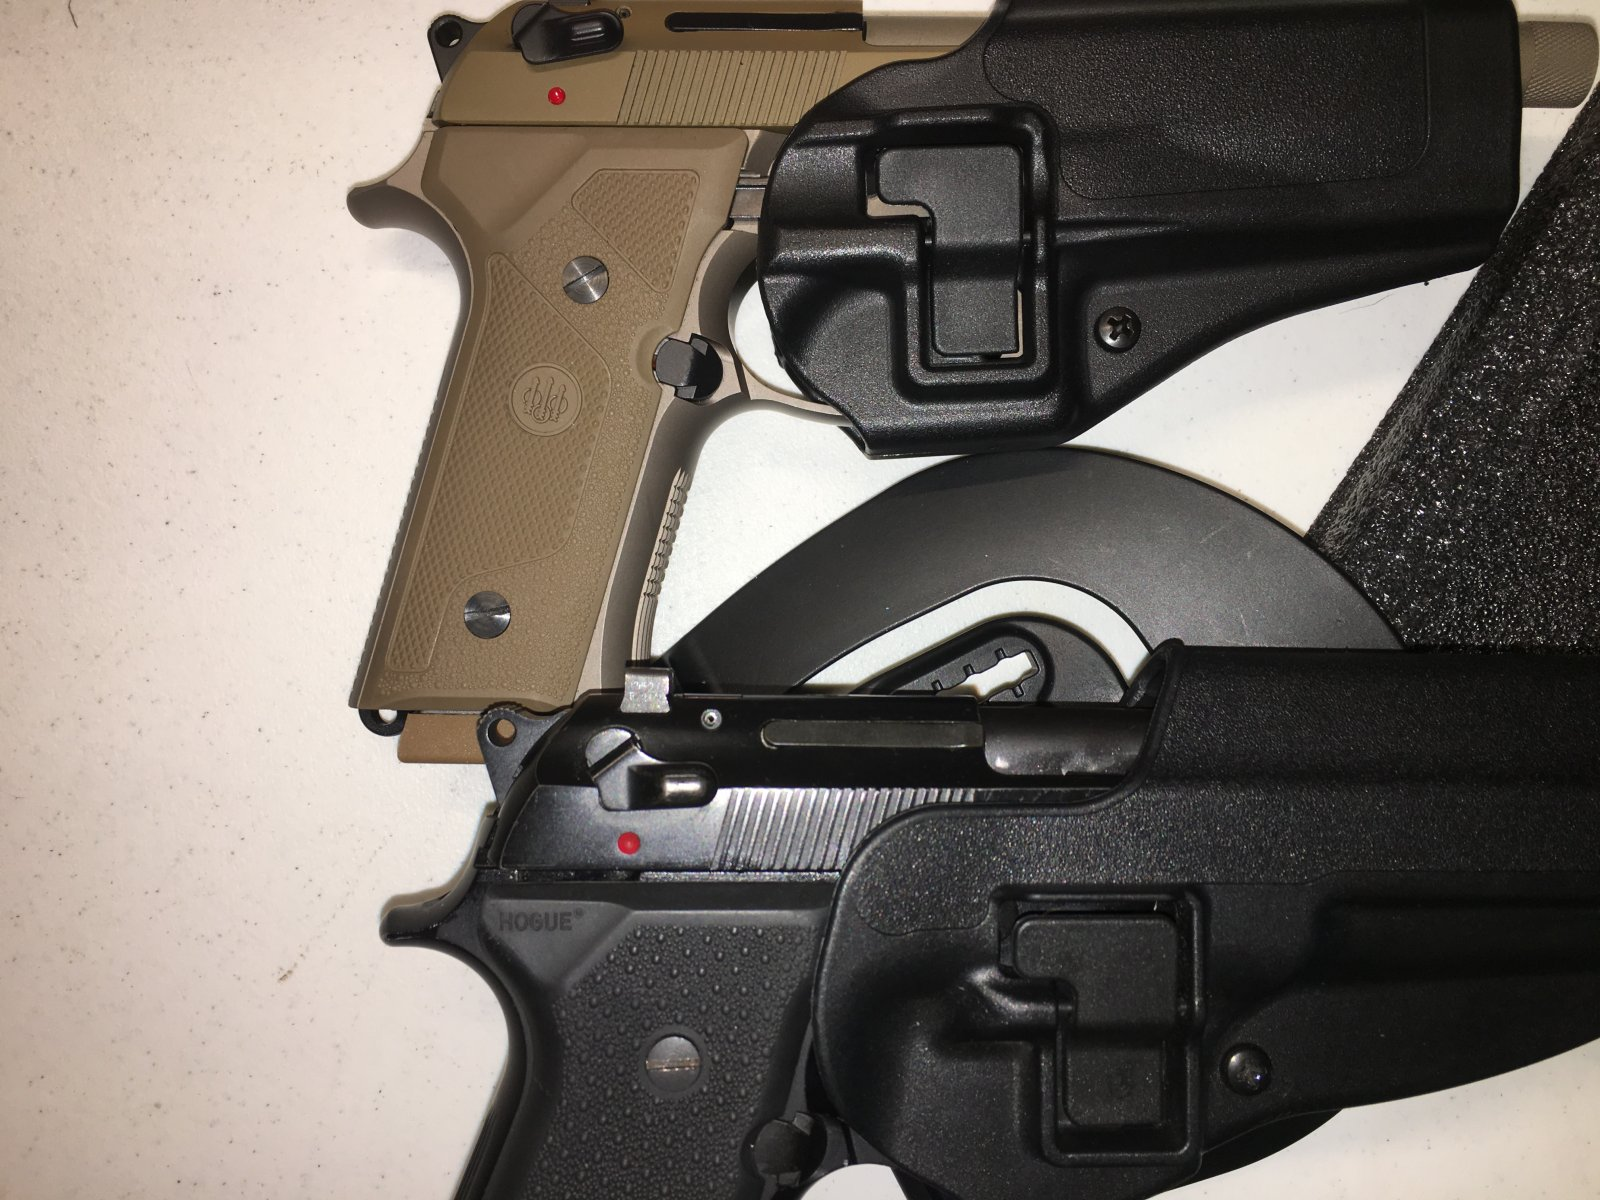 What m9a3 holster are you using | The Leading Glock Forum and